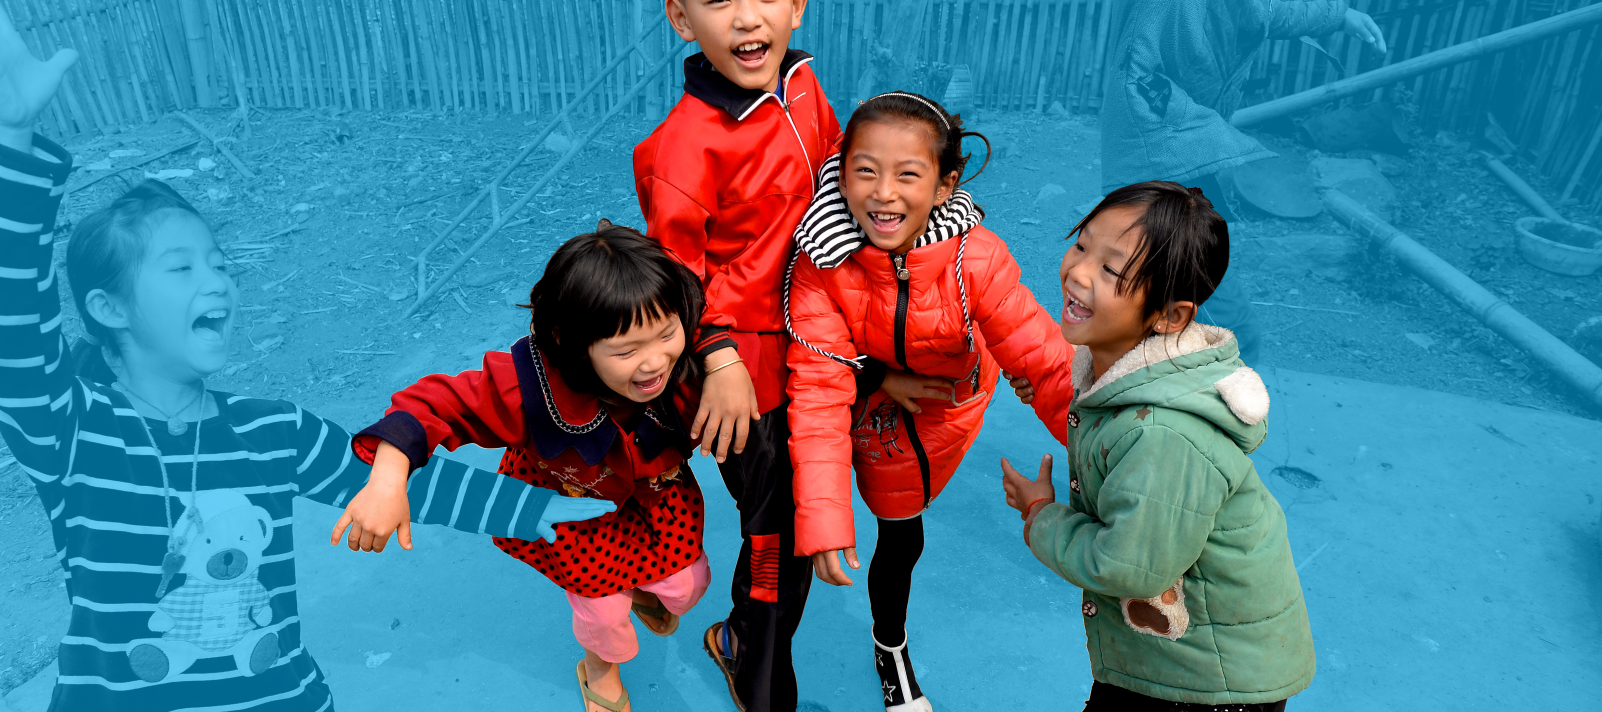 Girls and boys playing and laughing, rural China.